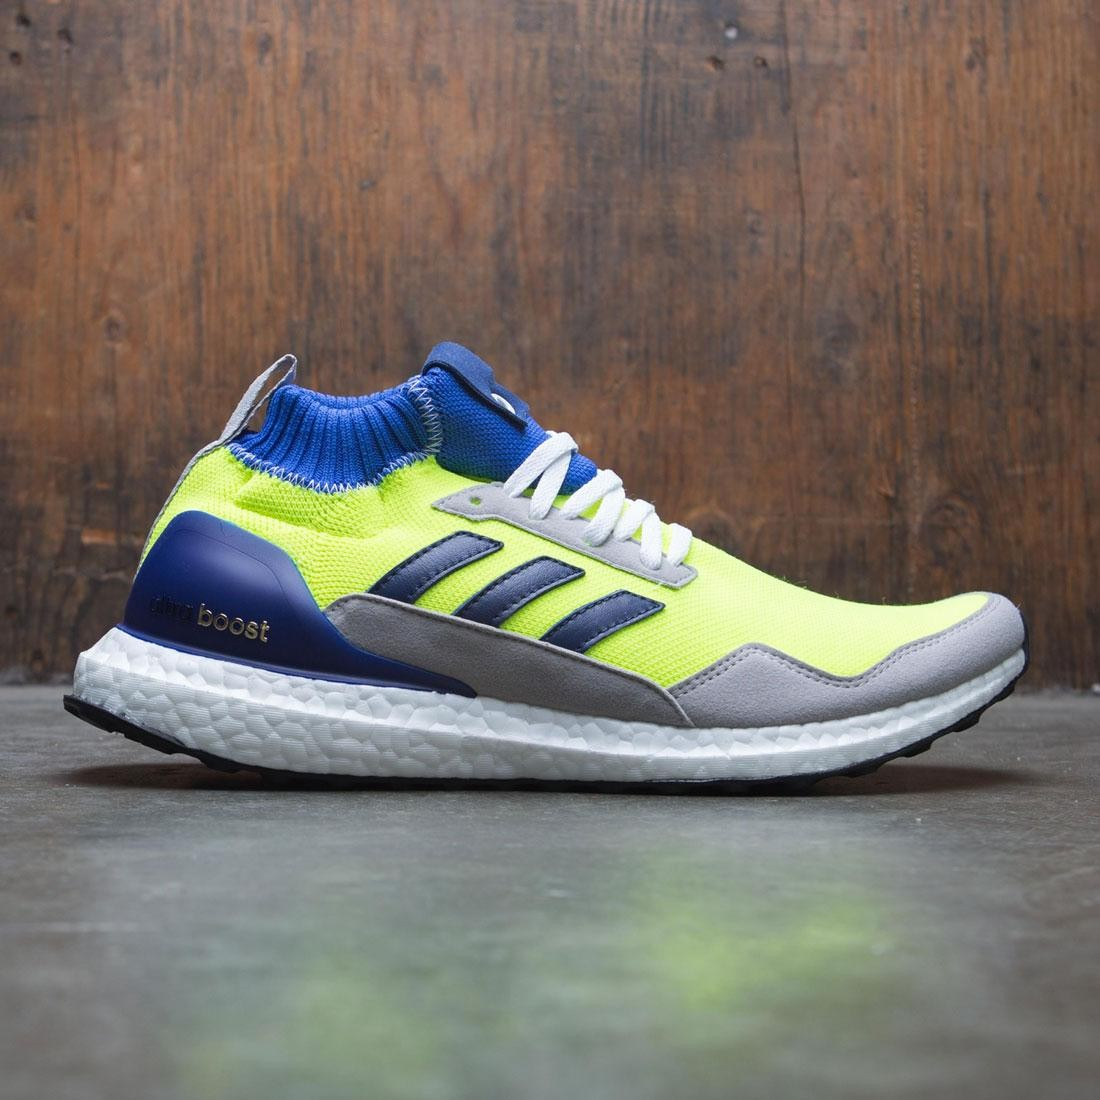 2185446db Adidas Men UltraBOOST Mid Proto yellow solar yellow hi-res blue white